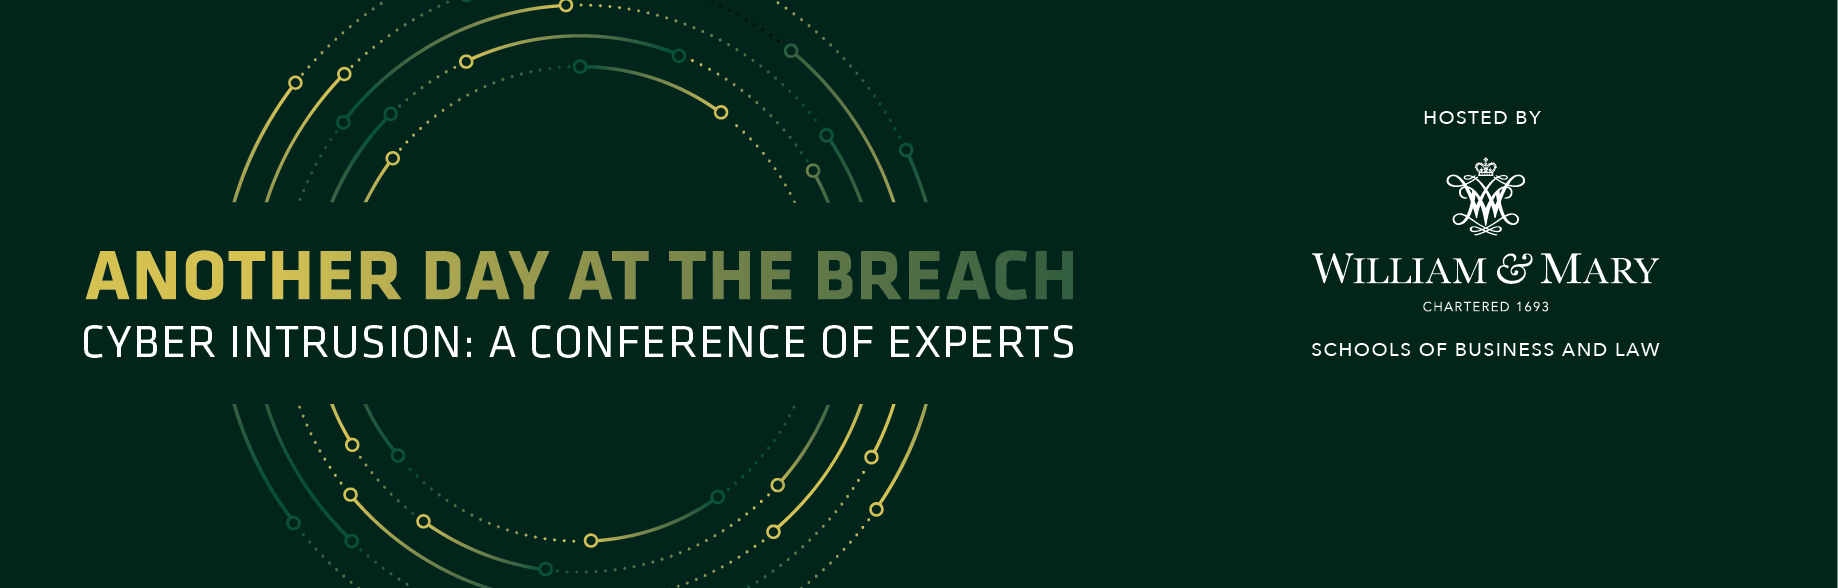 Another Day at the Breach - Cyber Intrusion: A Conference of Experts